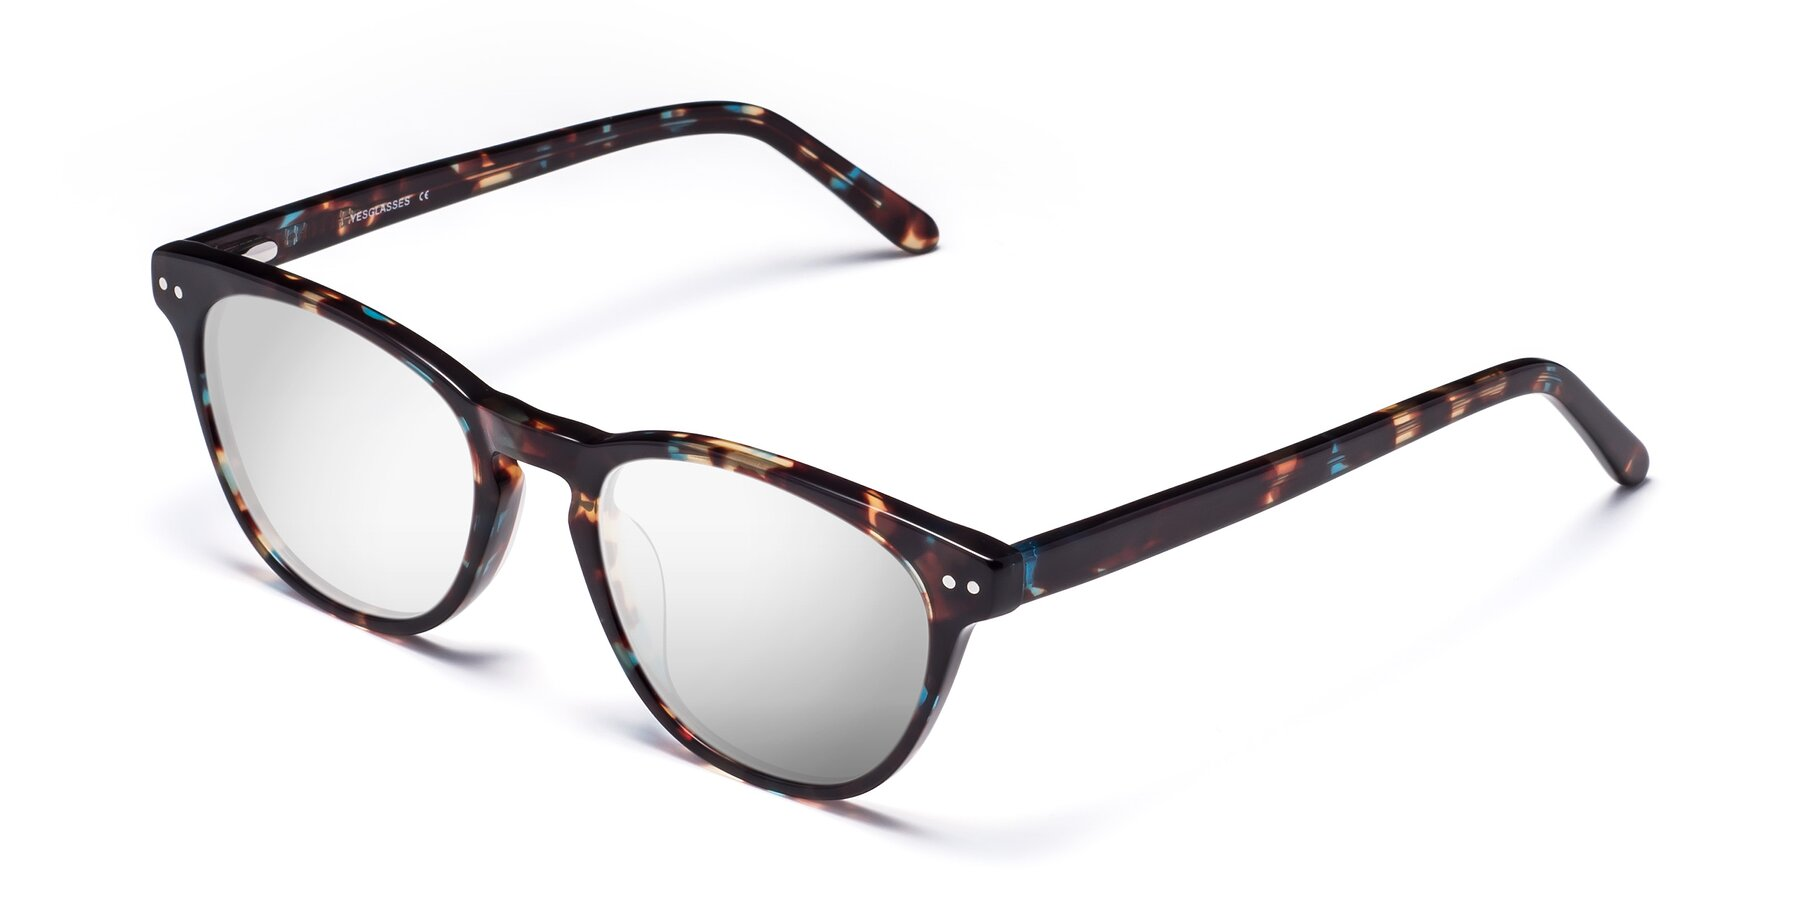 Angle of Blaze in Tortoise-Blue with Silver Mirrored Lenses